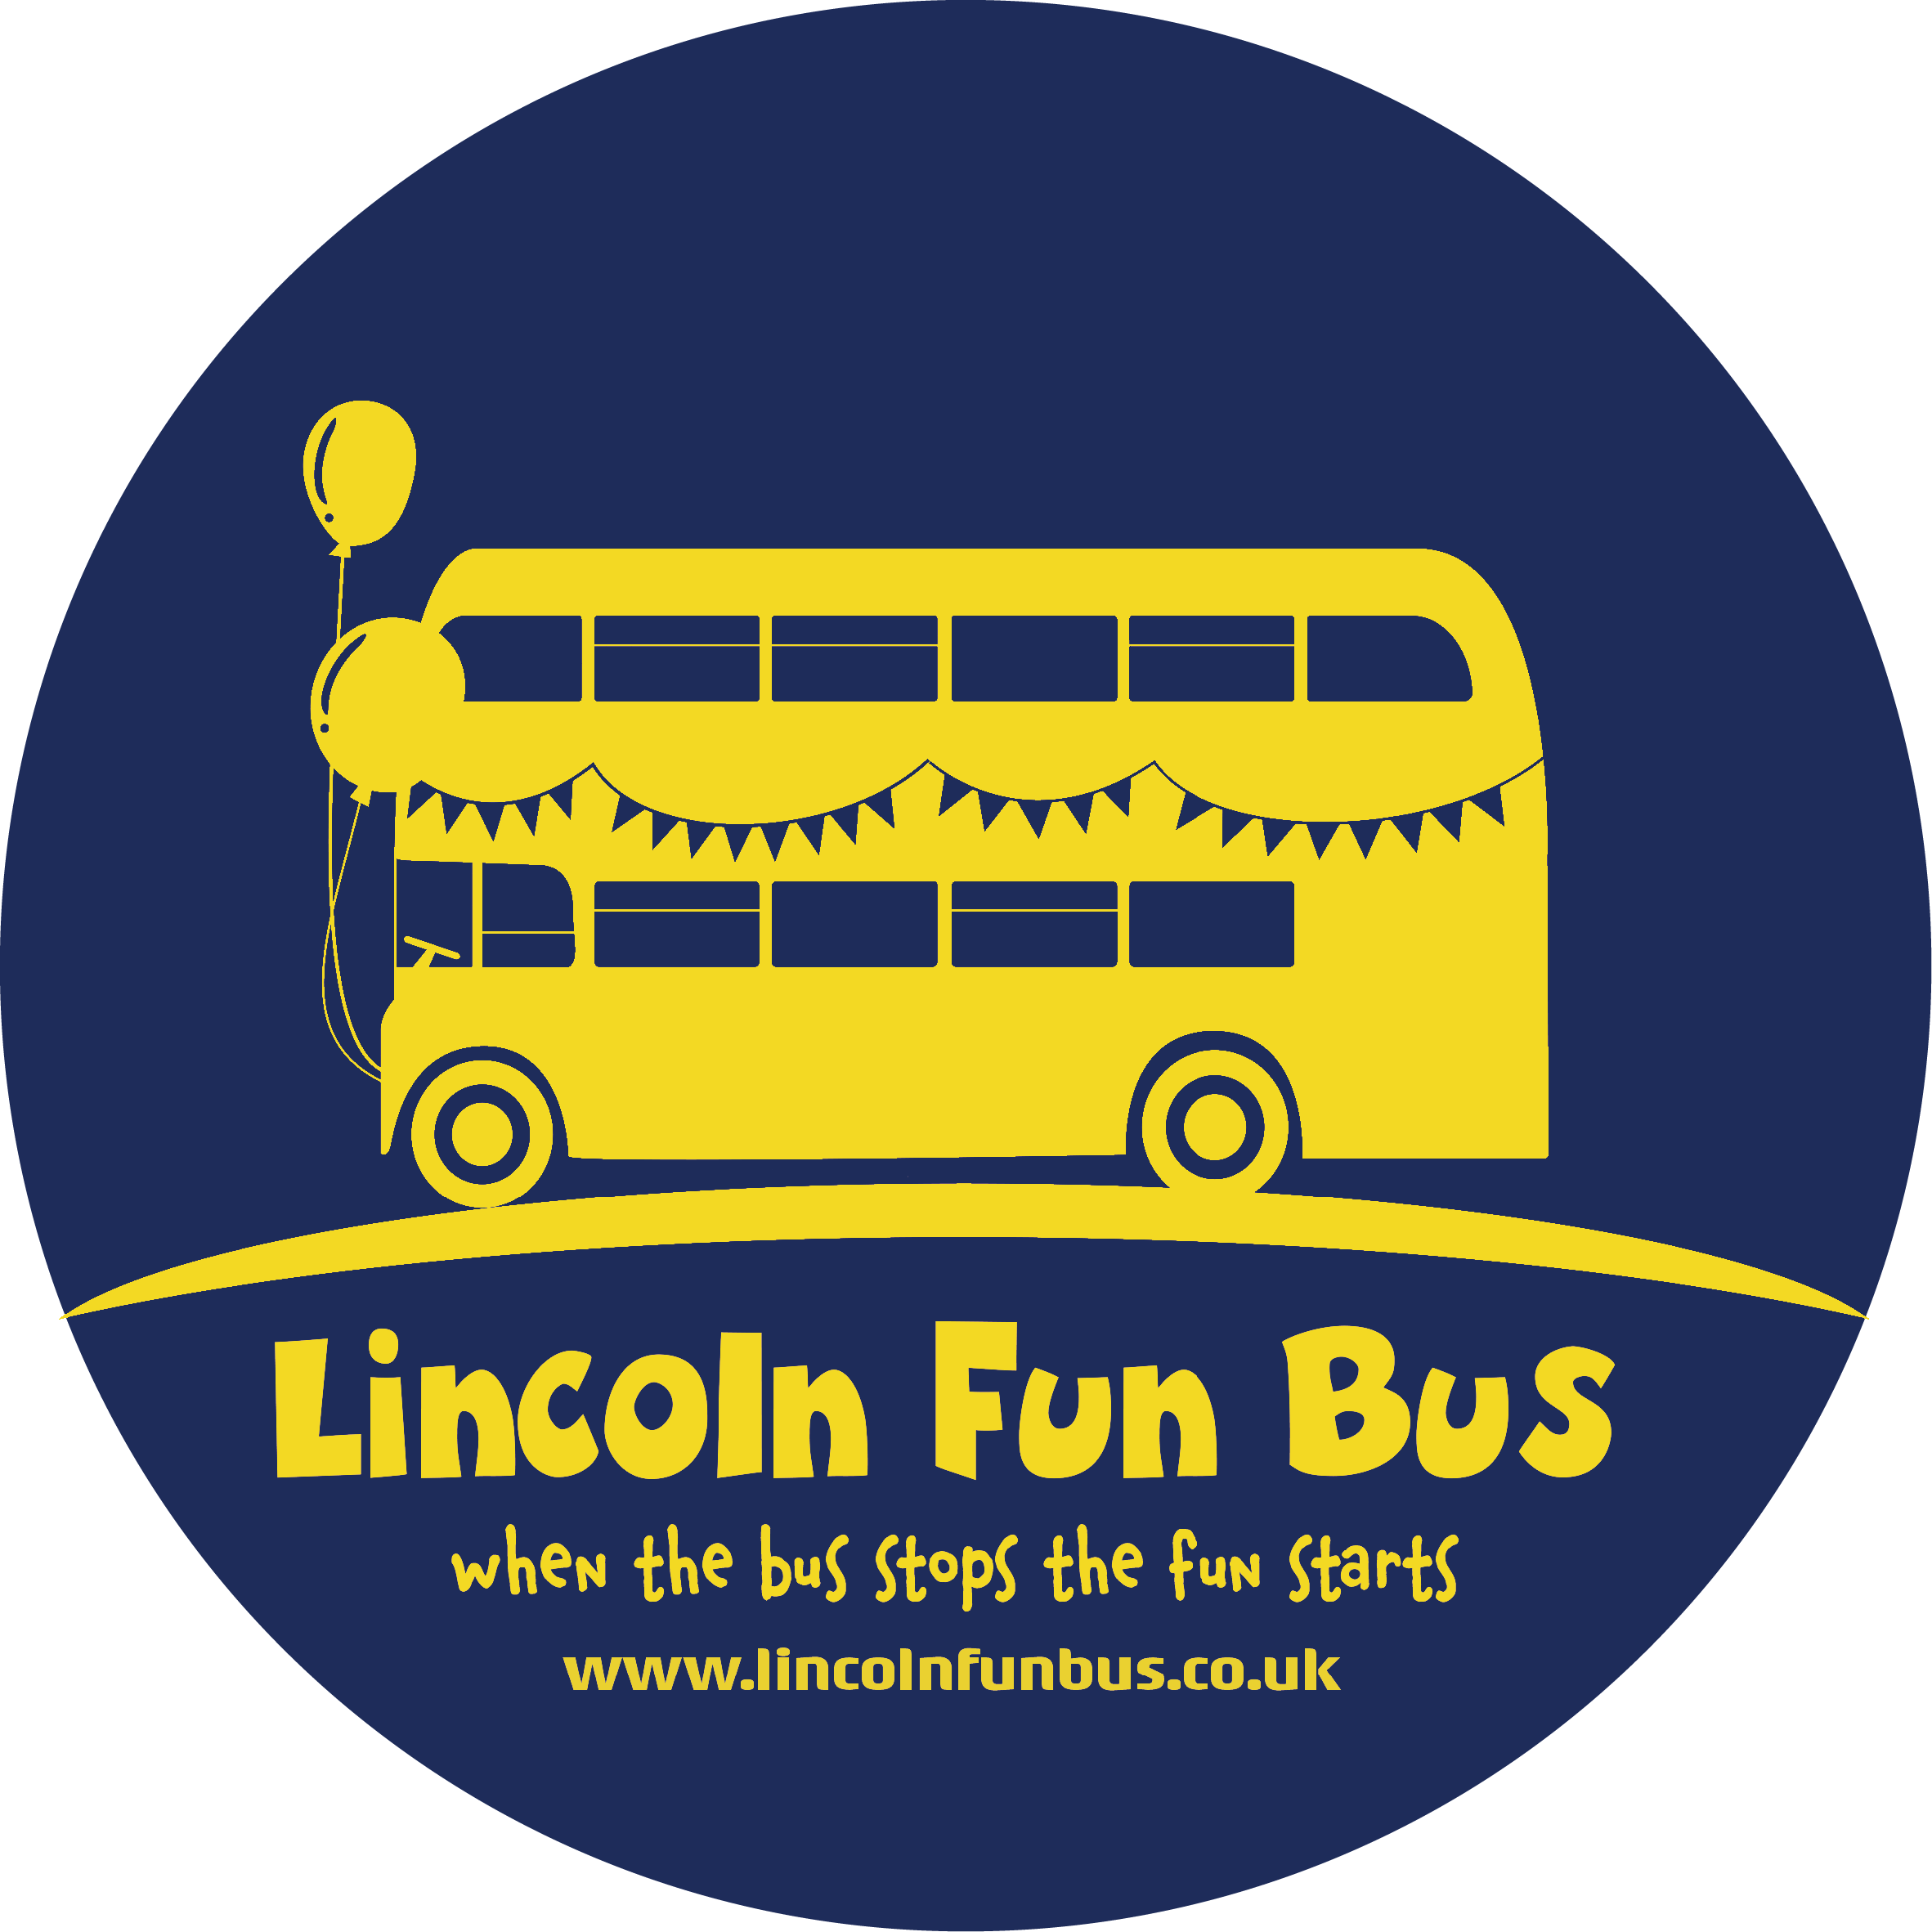 Lincoln Fun Bus